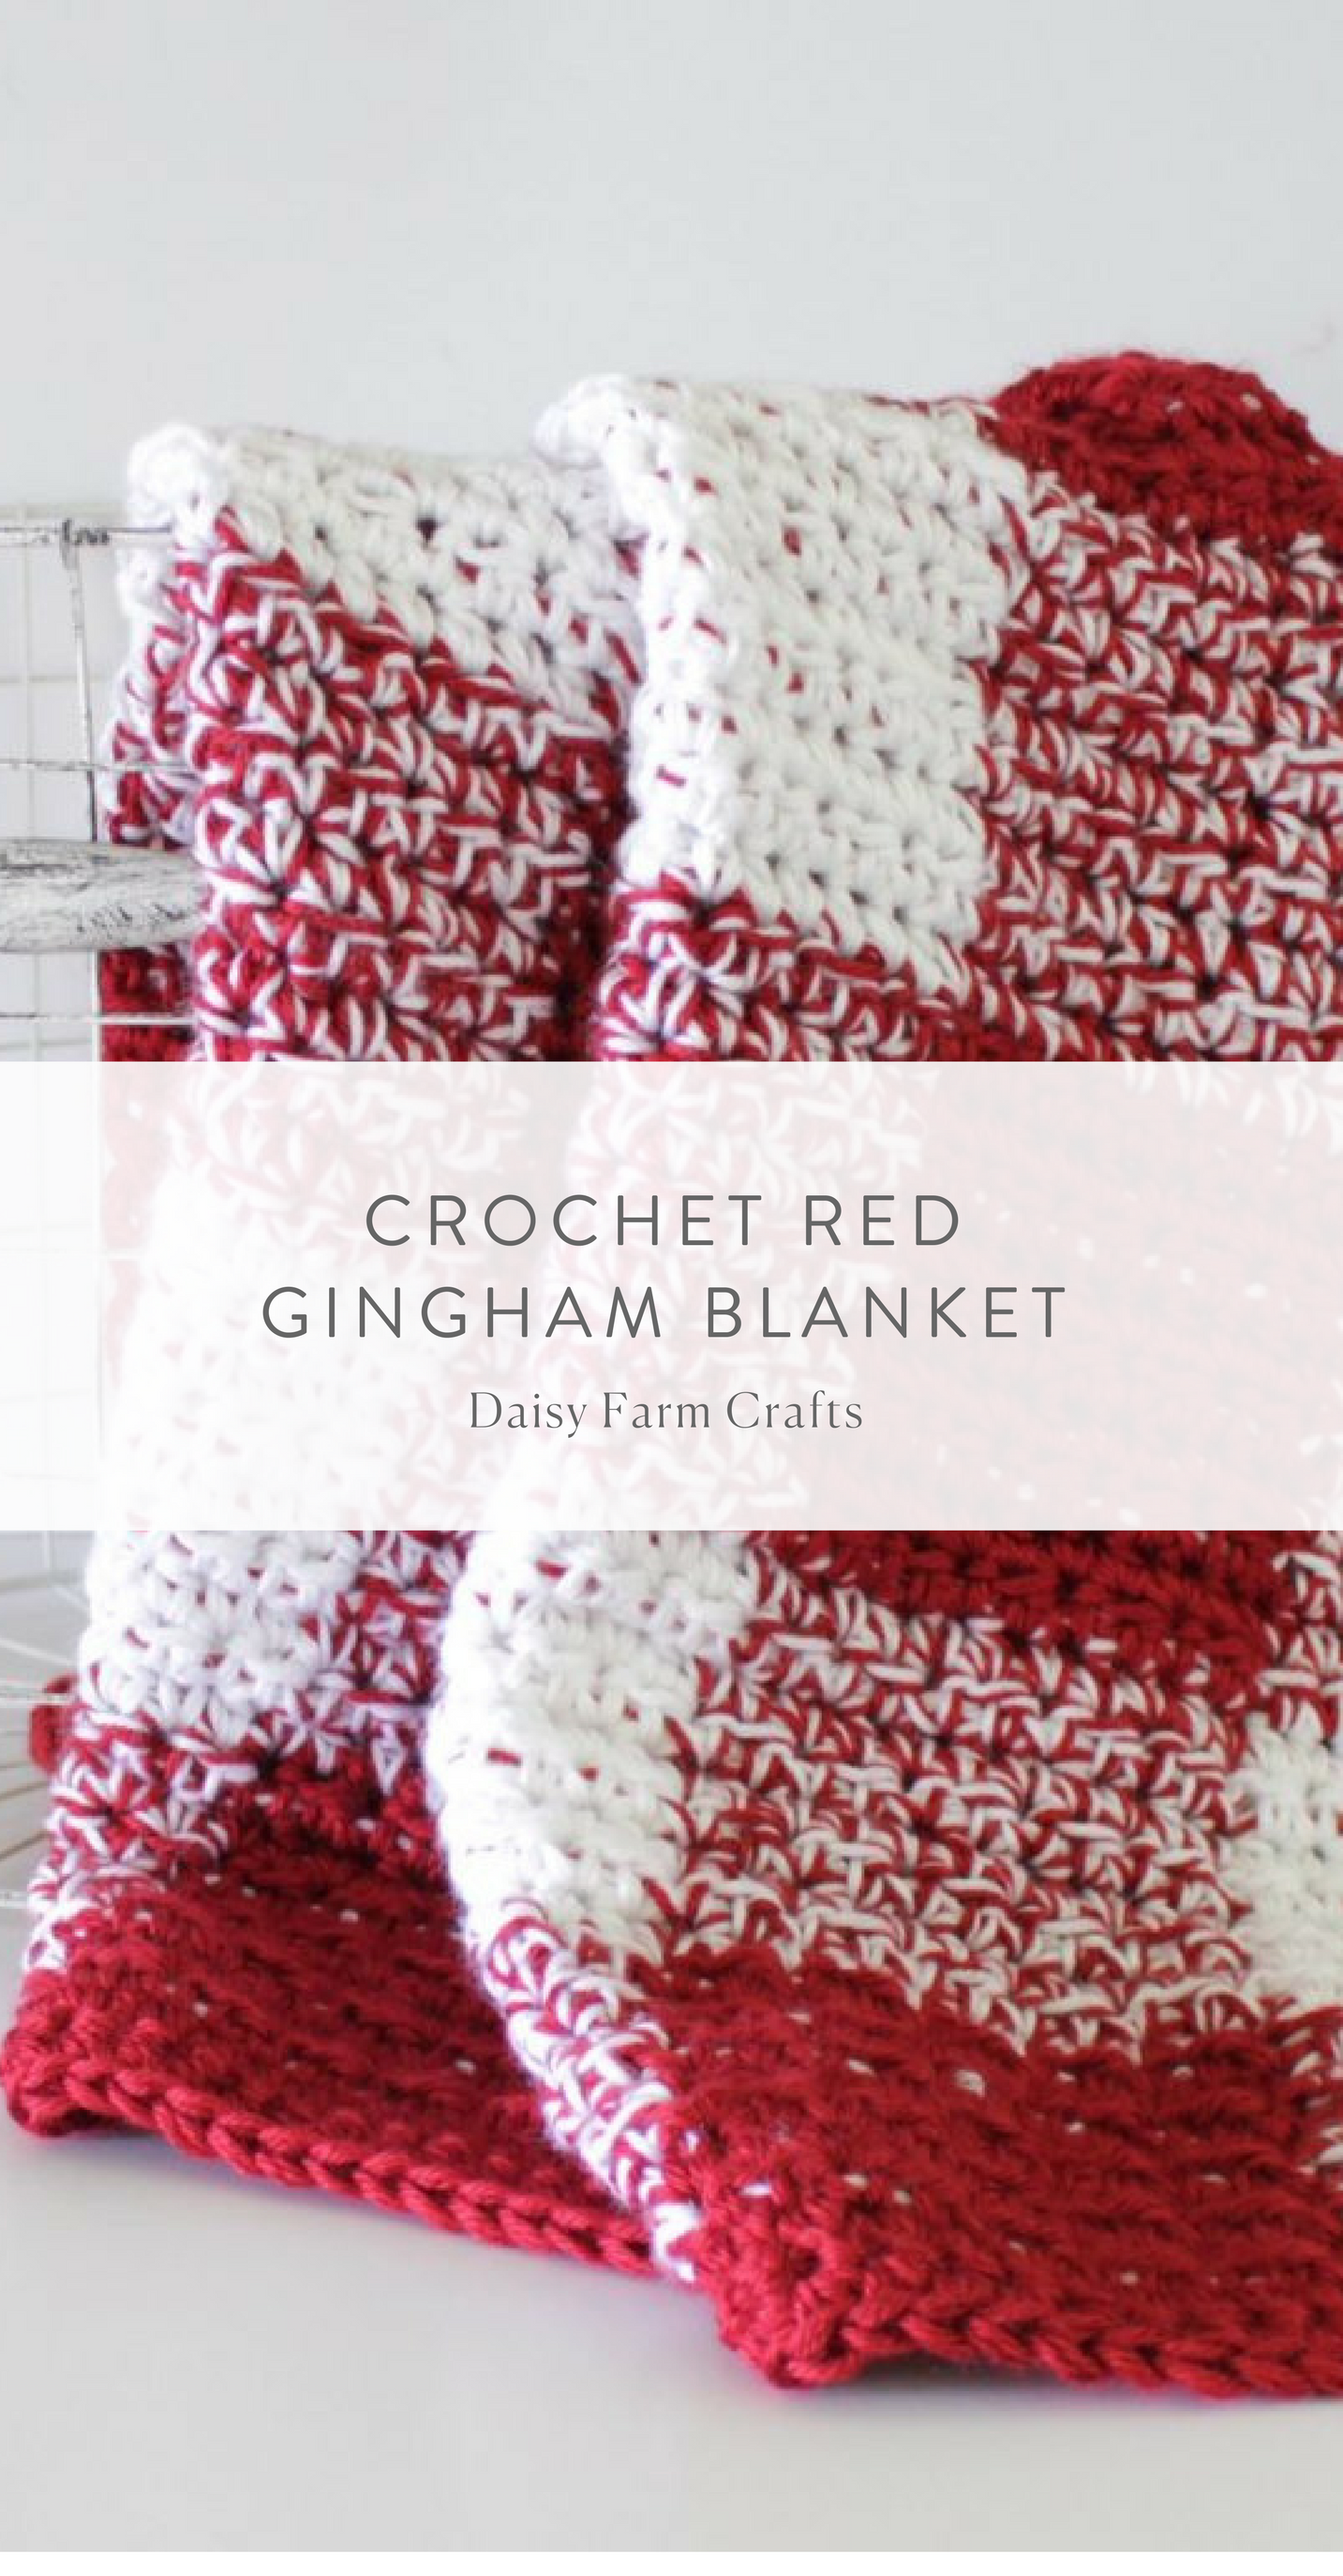 Free Pattern - Crochet Red Gingham Blanket | aphgans | Pinterest ...